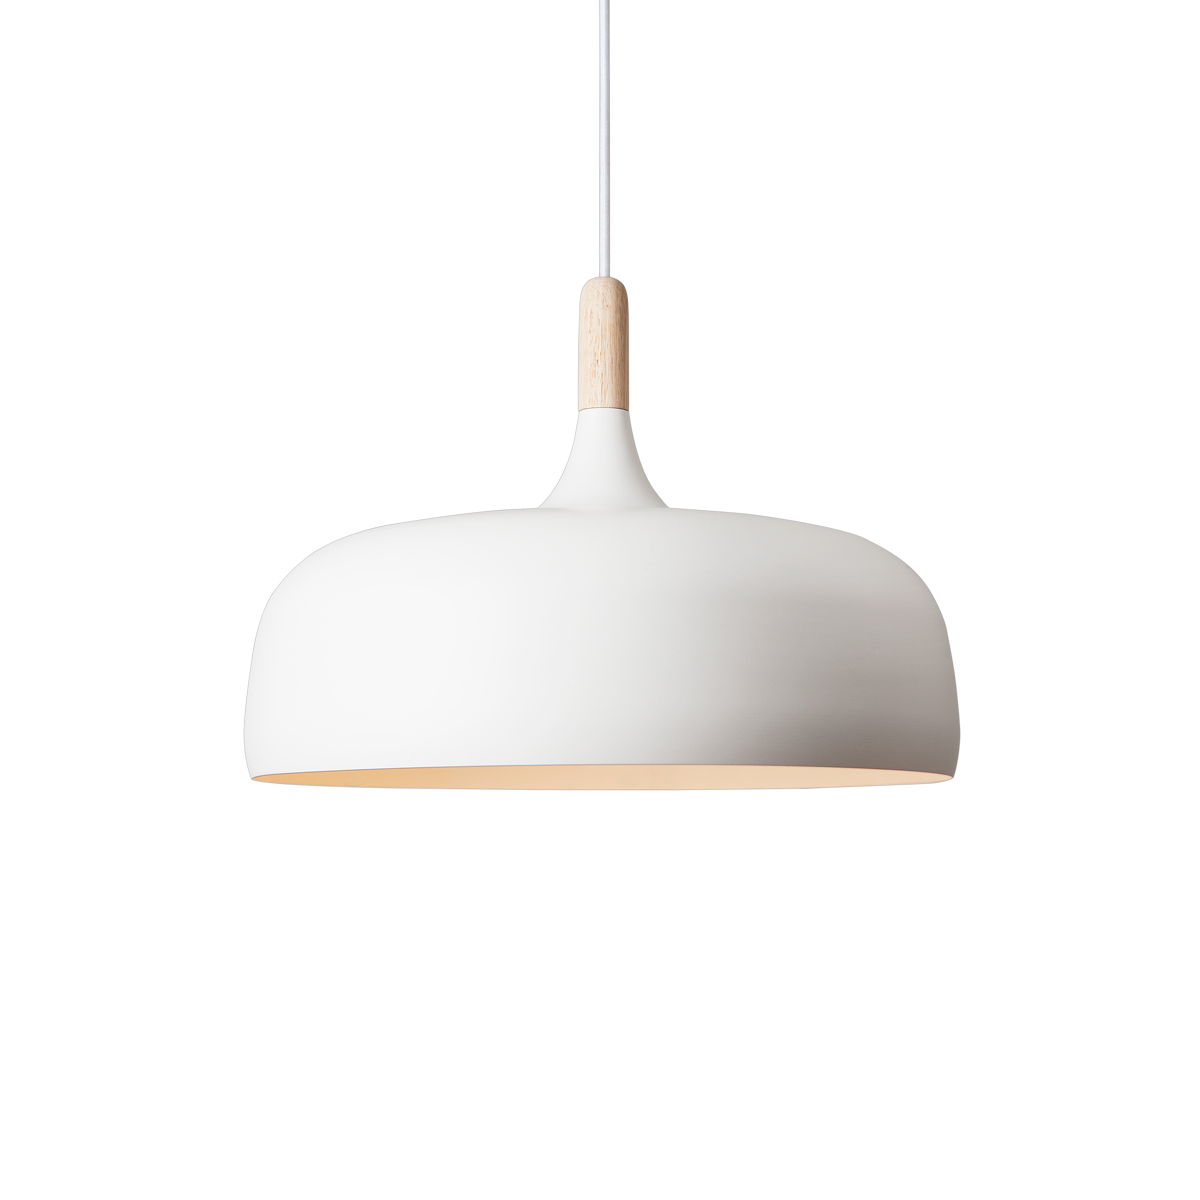 Northern Acorn Pendant Light 可恩 圓形吊燈